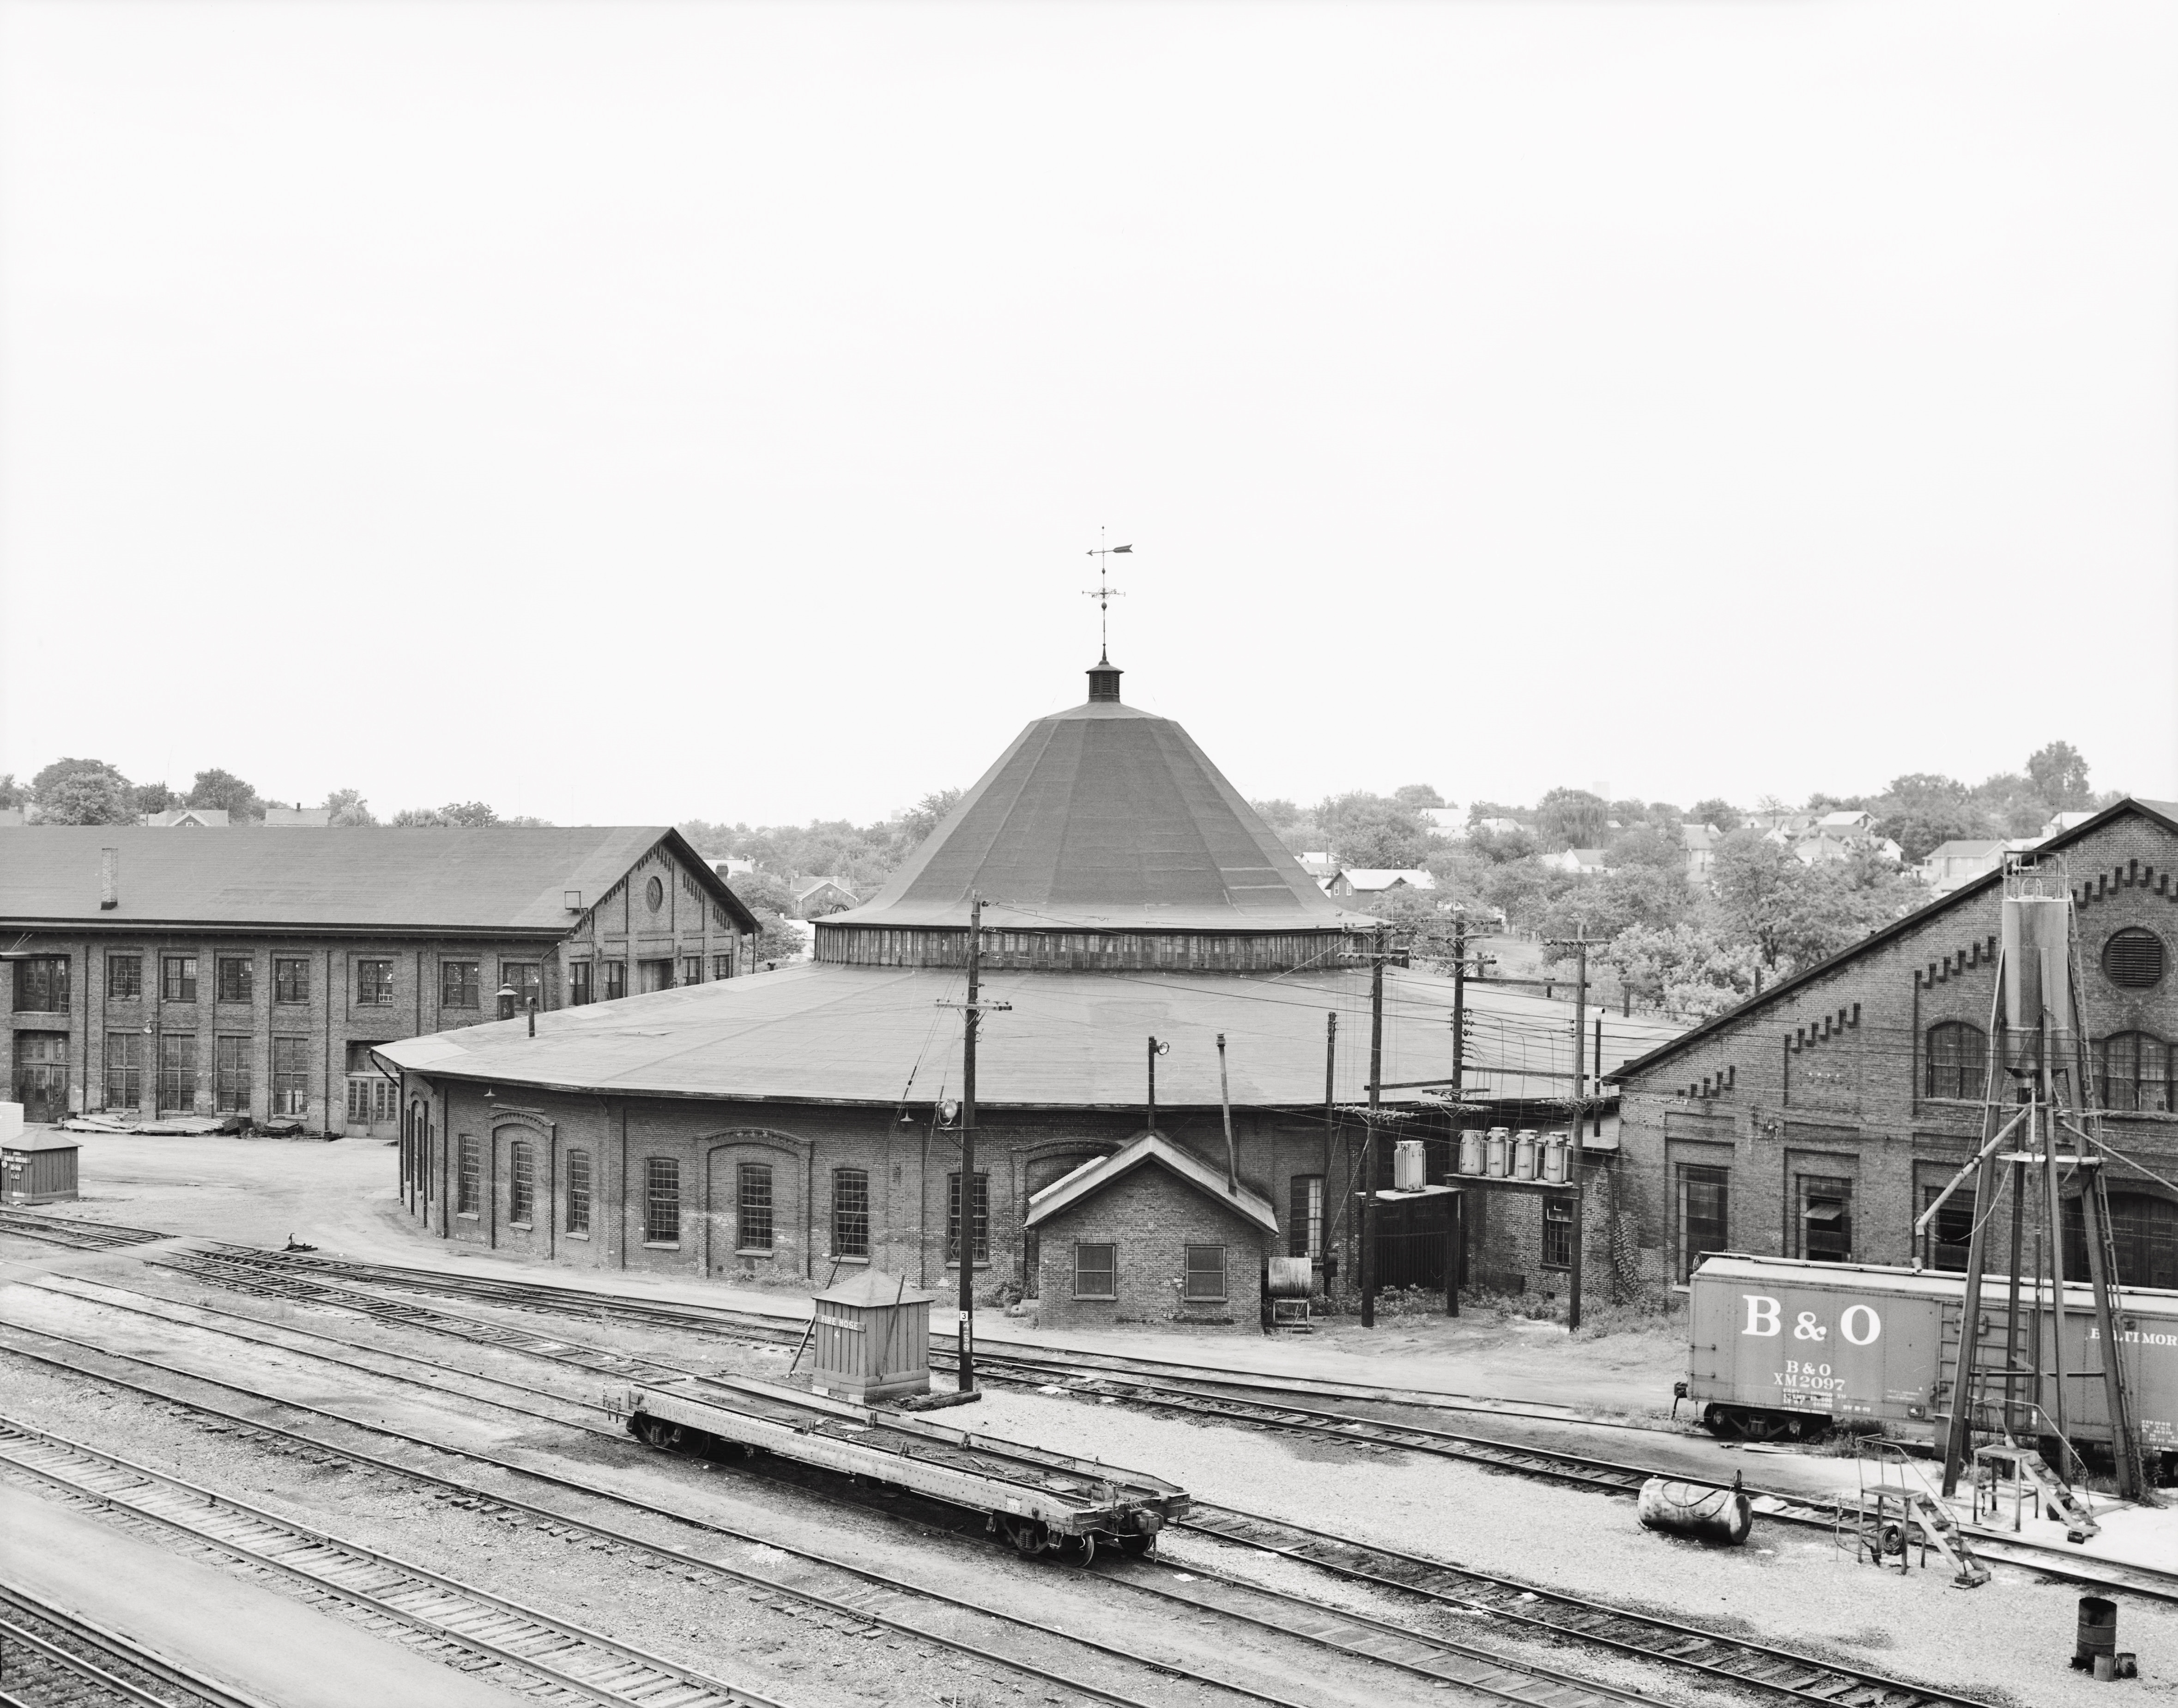 B&O R.R. Martinsburg West Roundhouse